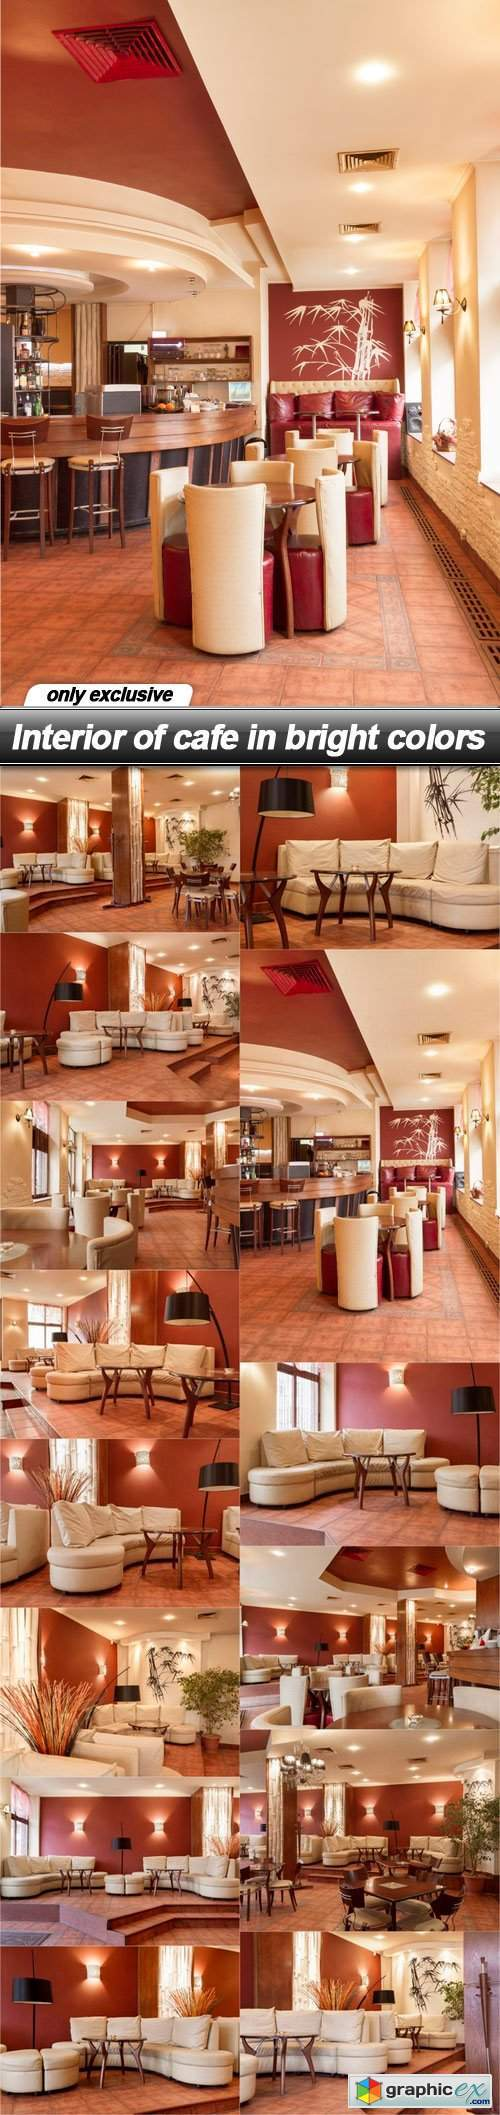 Interior of cafe in bright colors - 14 UHQ JPEG